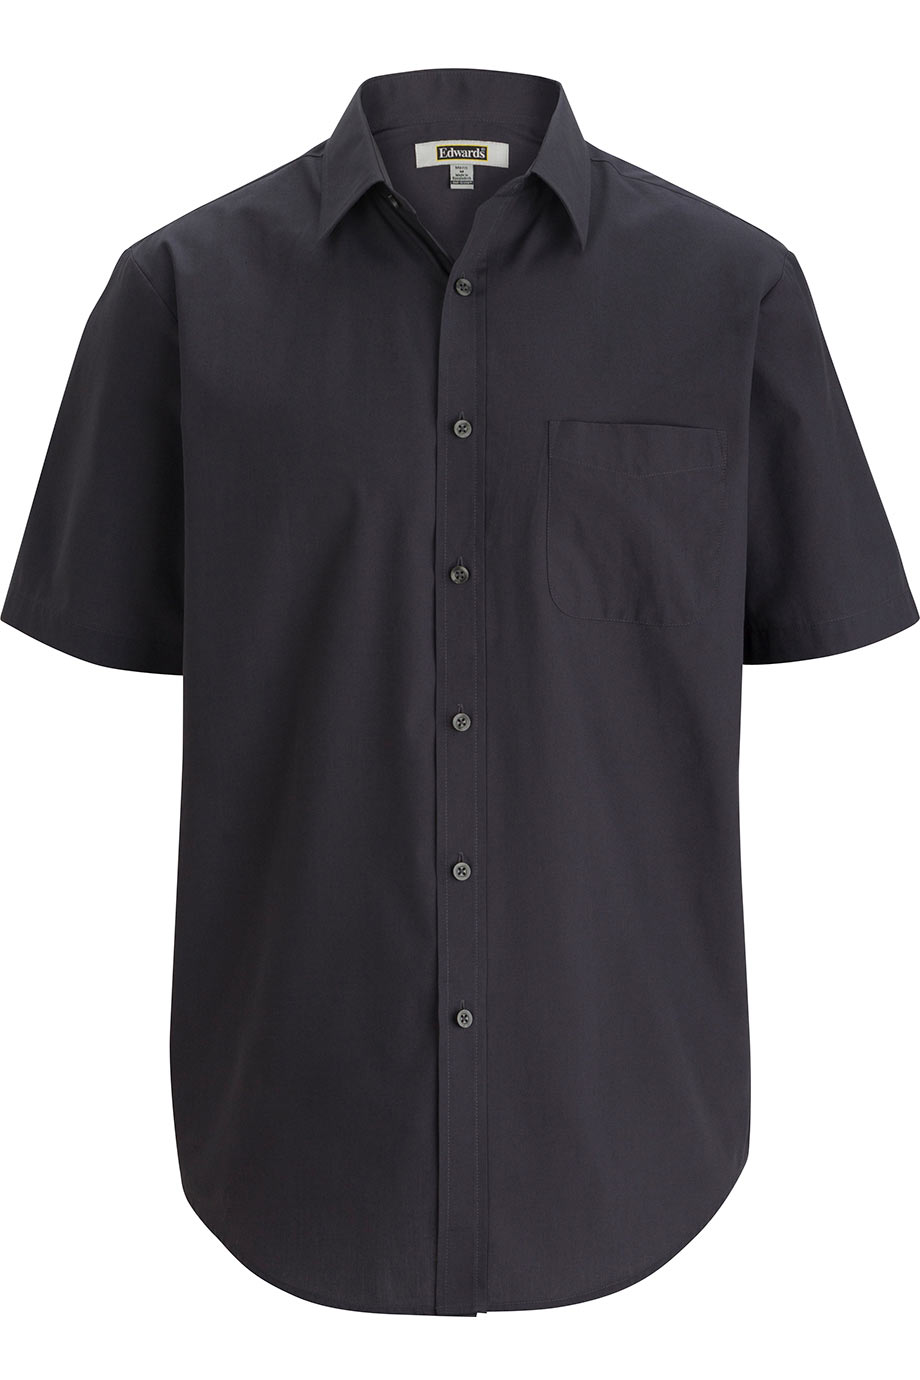 Dark Grey Edwards Mens Essential Broadcloth Shirt Short Sleeve